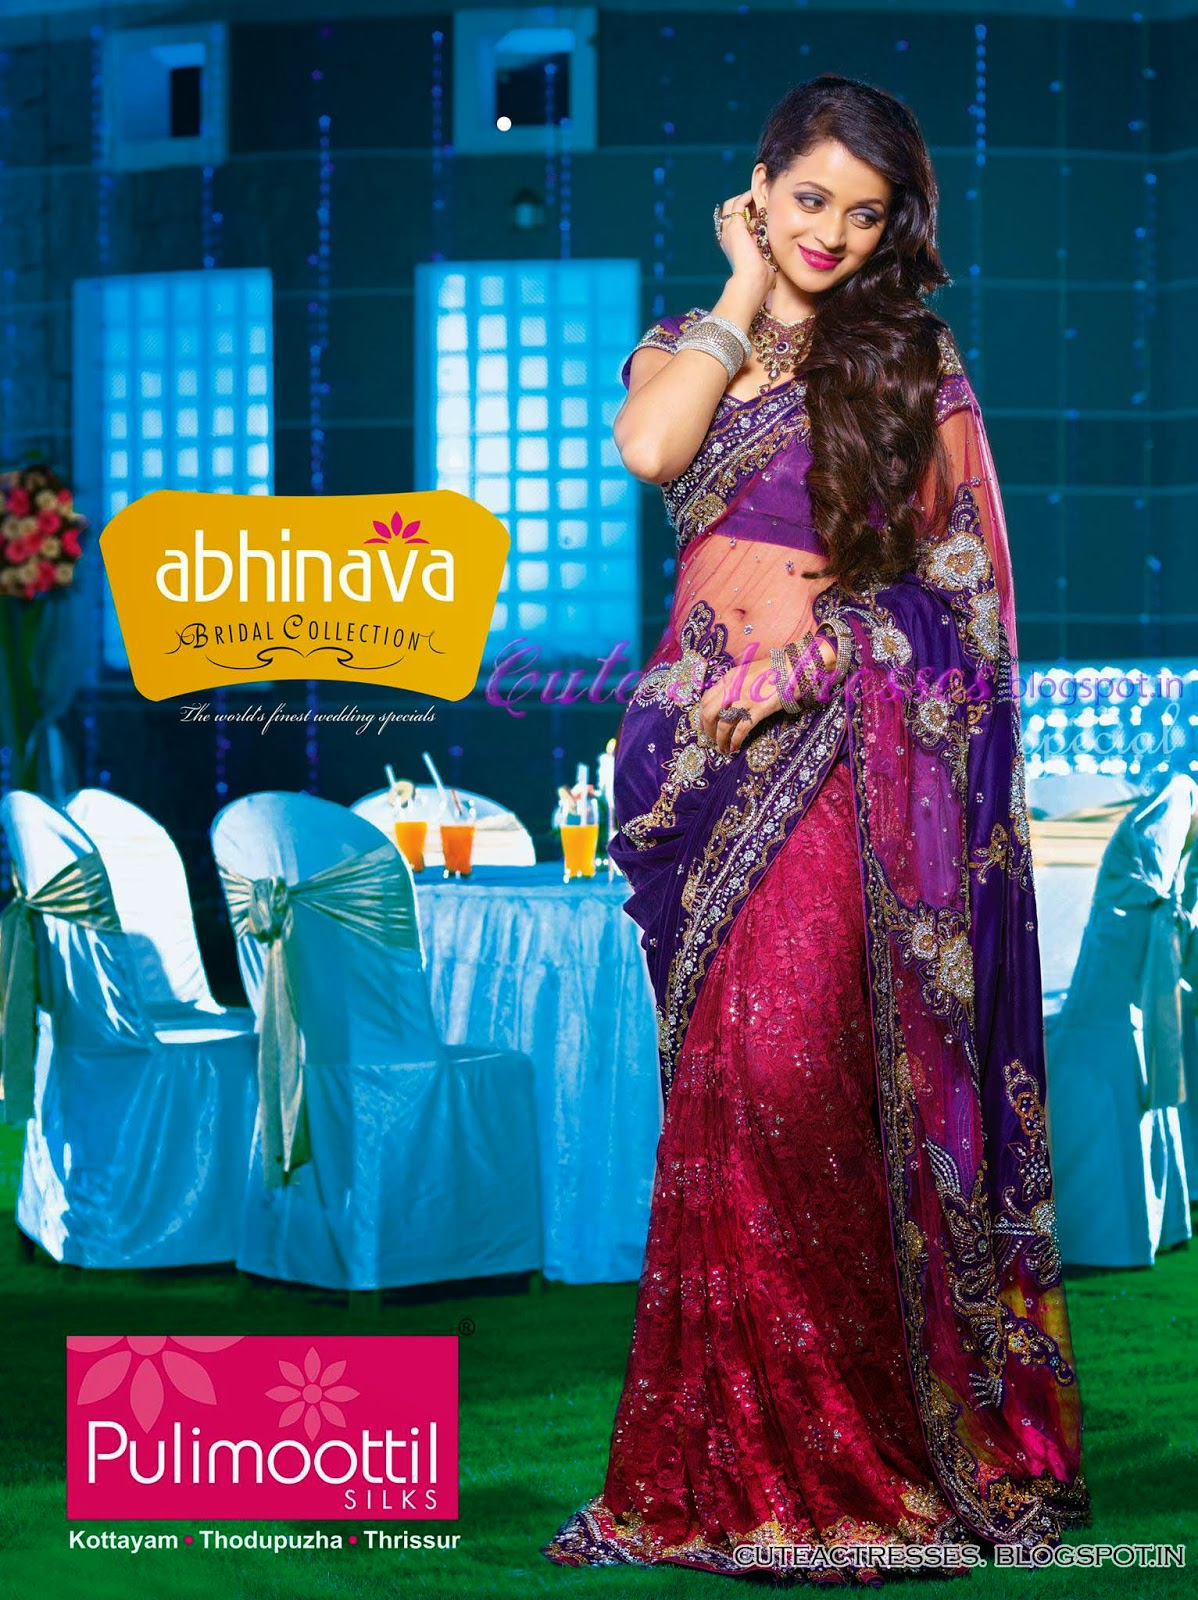 Bhavana in pulimoottil silks ads only cute actresses bhavana in pulimoottil silks ads thecheapjerseys Gallery